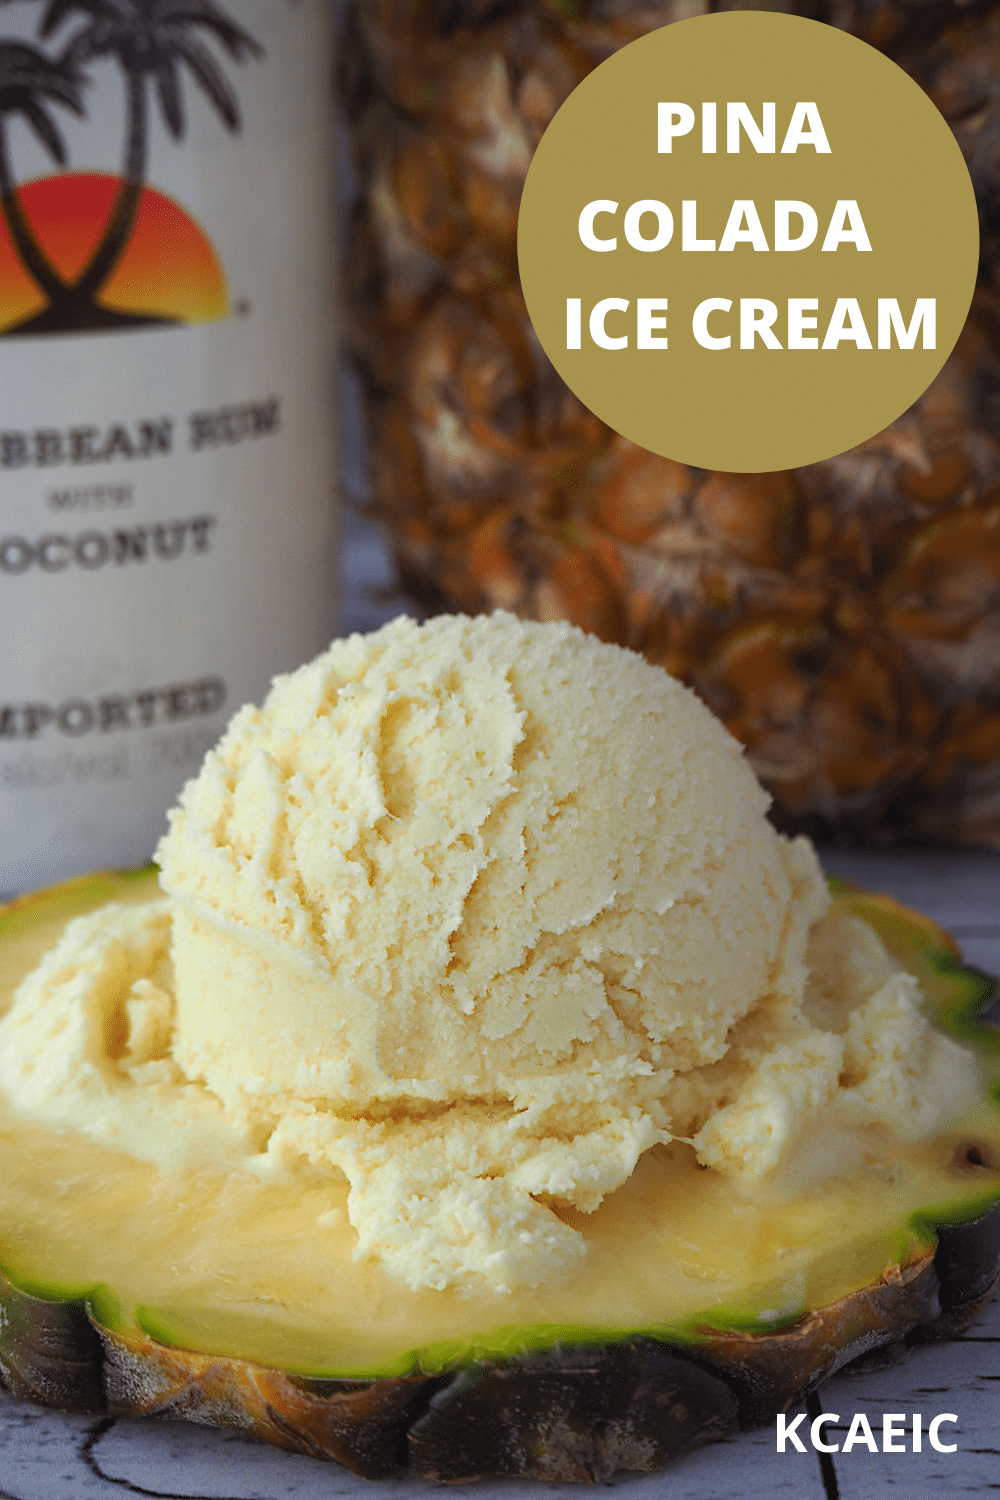 scoop of pina colada ice cream on pineapple slice, with coconut rum and pineapple in background, and text overlay, pina colada ice cream and KCAEIC.